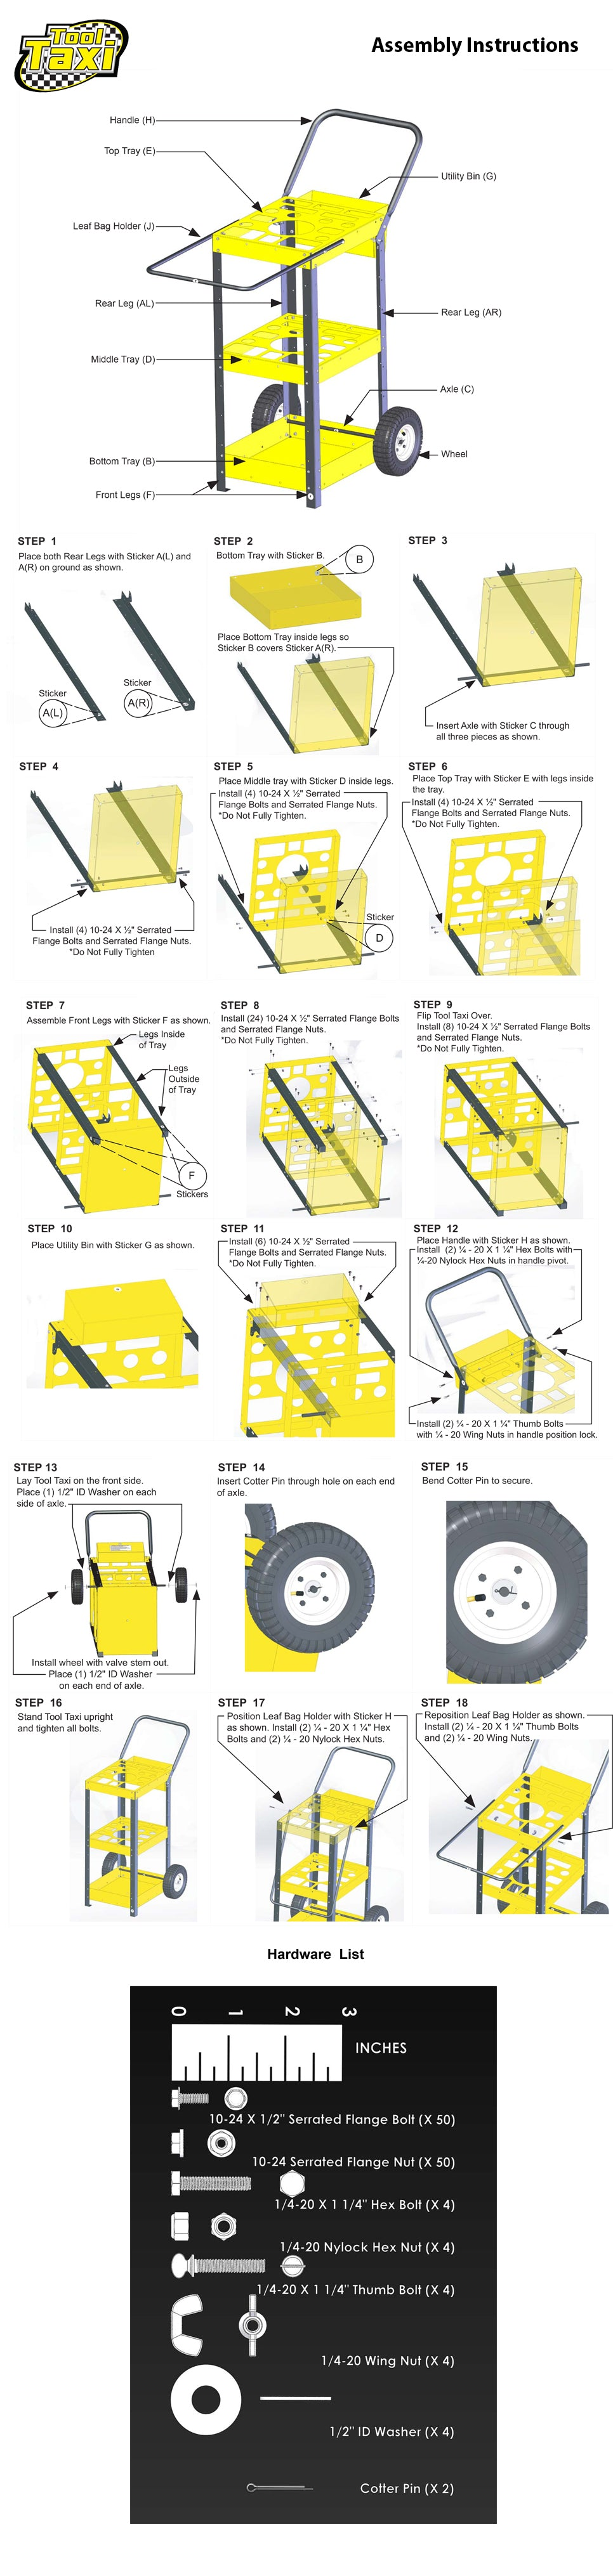 Assembly Instructions Tooltaxihome Of The Ultimate Mobile